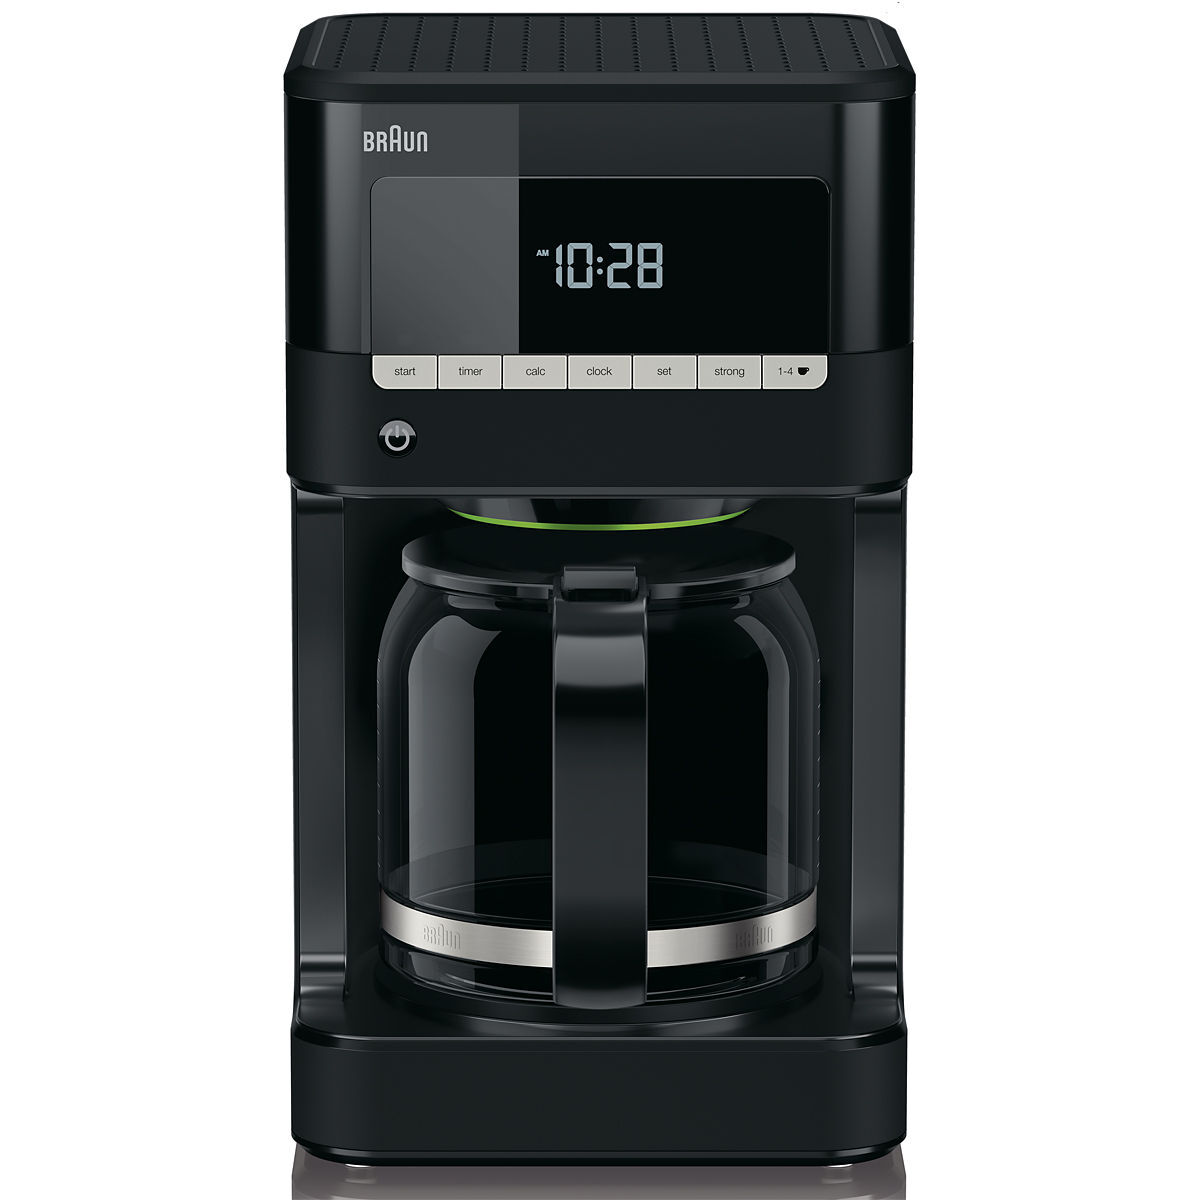 braun kaffeemaschine puraroma 7 kf7020 schwarz karstadt online shop. Black Bedroom Furniture Sets. Home Design Ideas